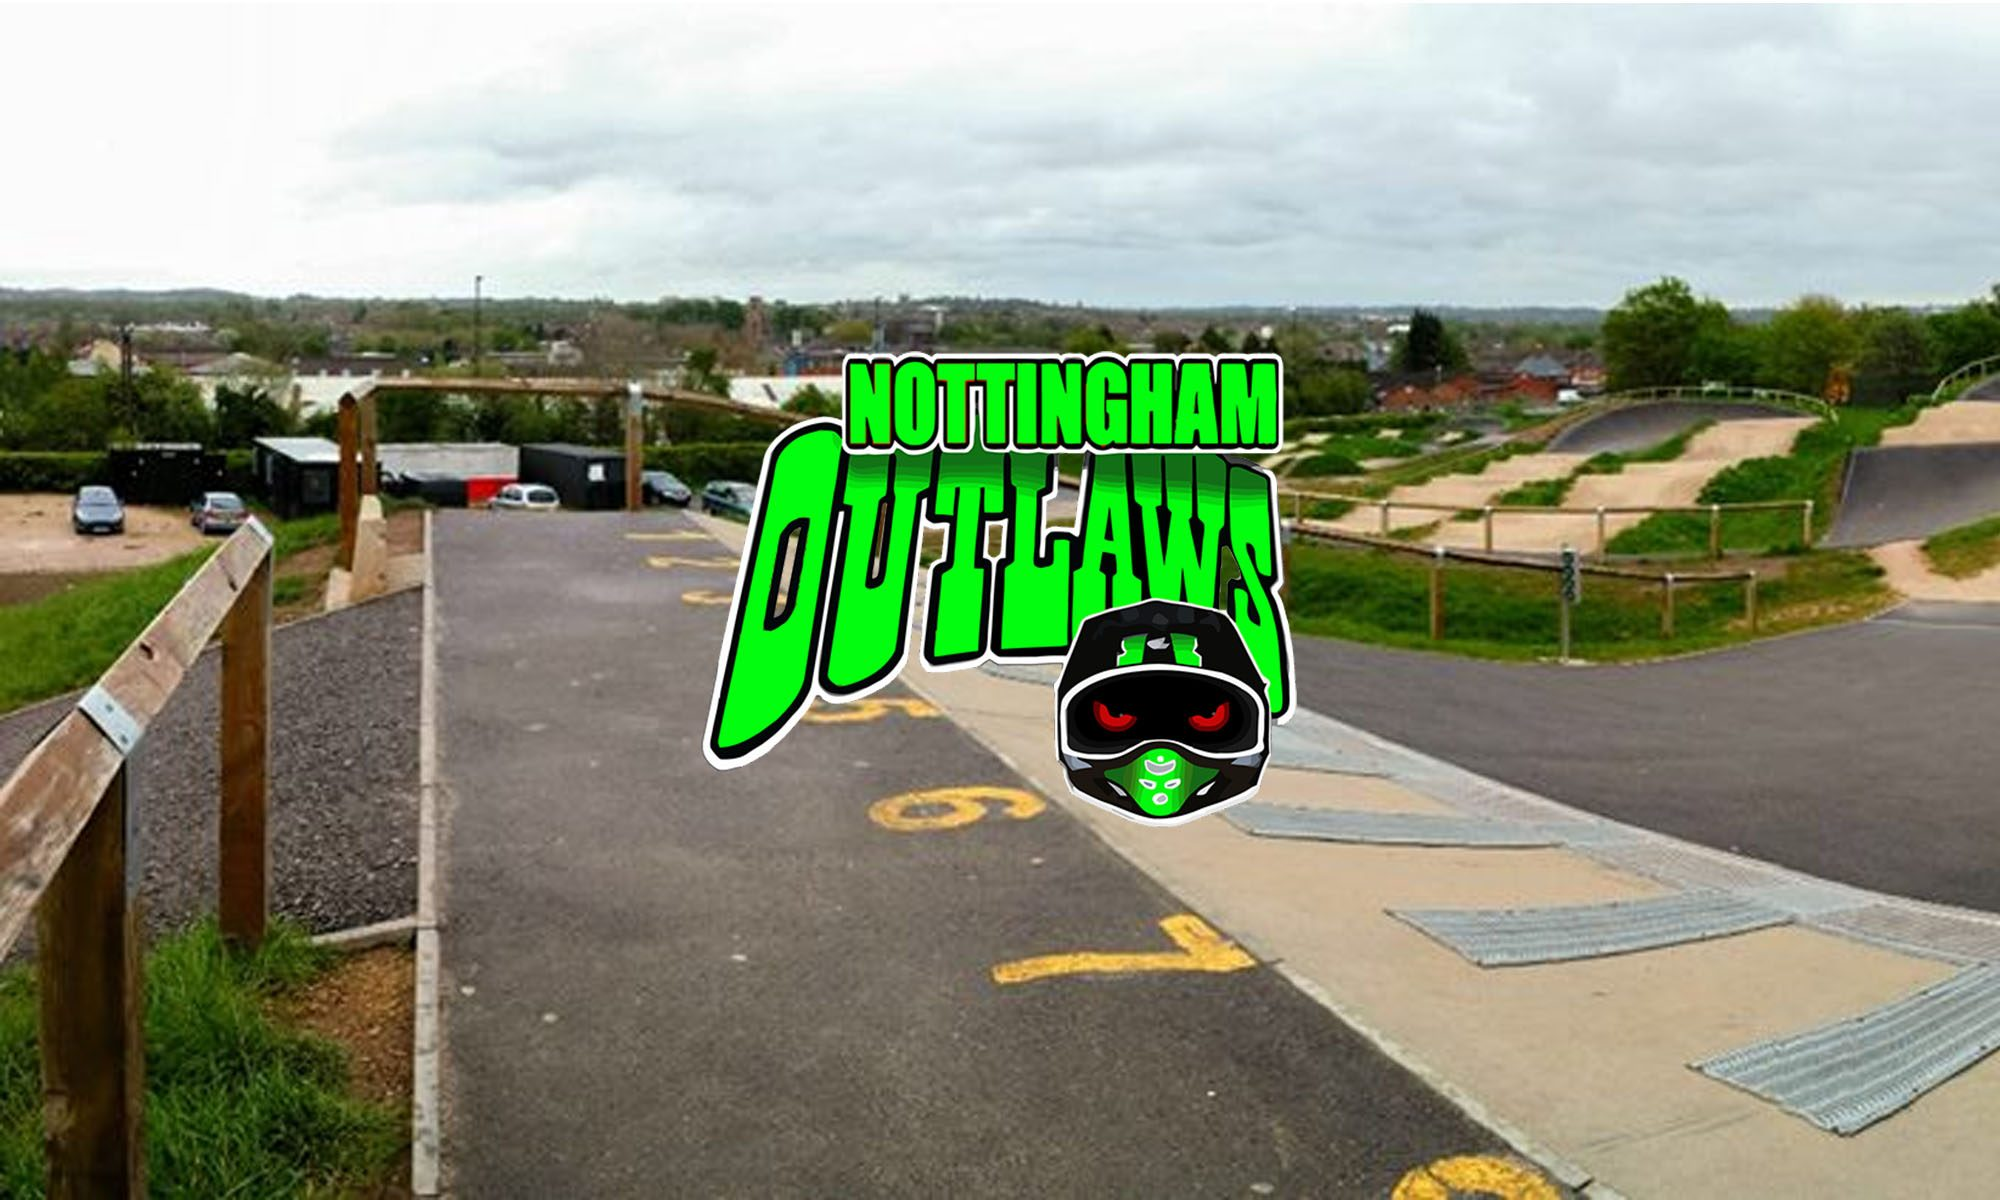 Nottingham Outlaws BMX Club